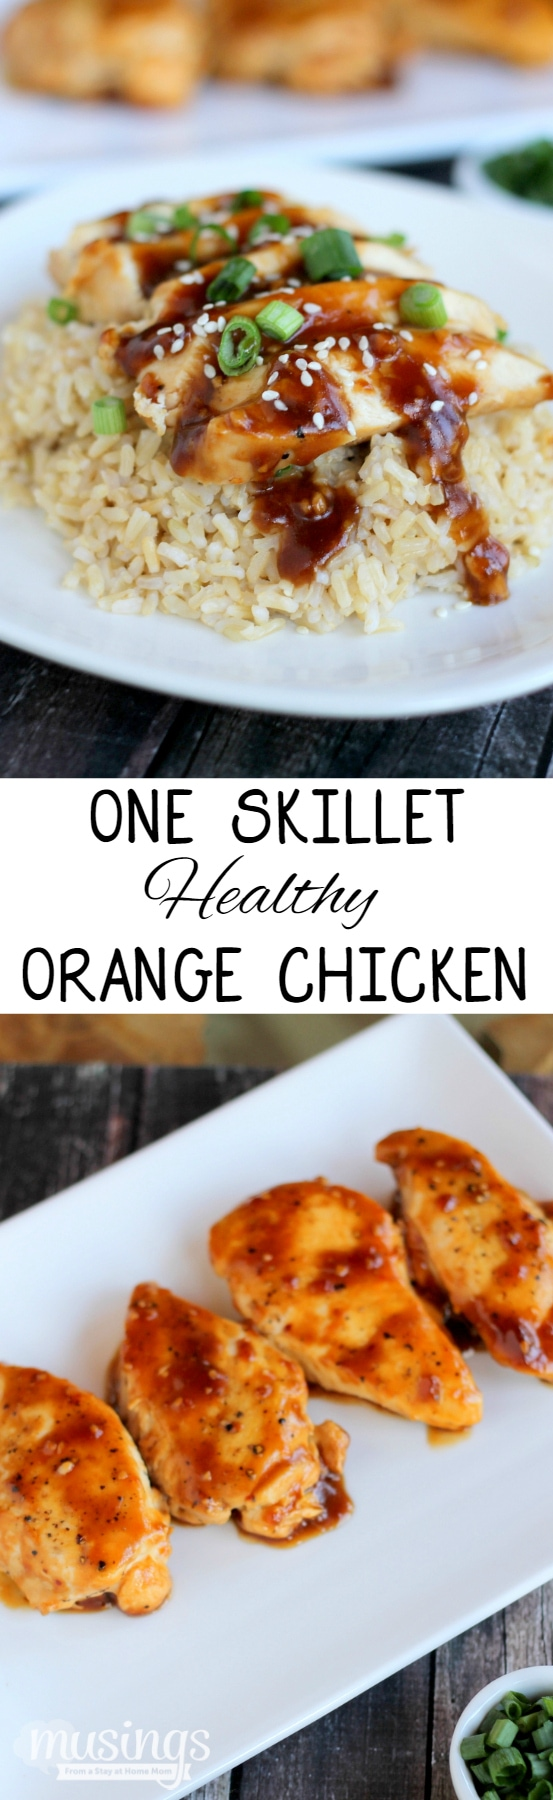 One Skillet Healthy Orange Chicken and Rice